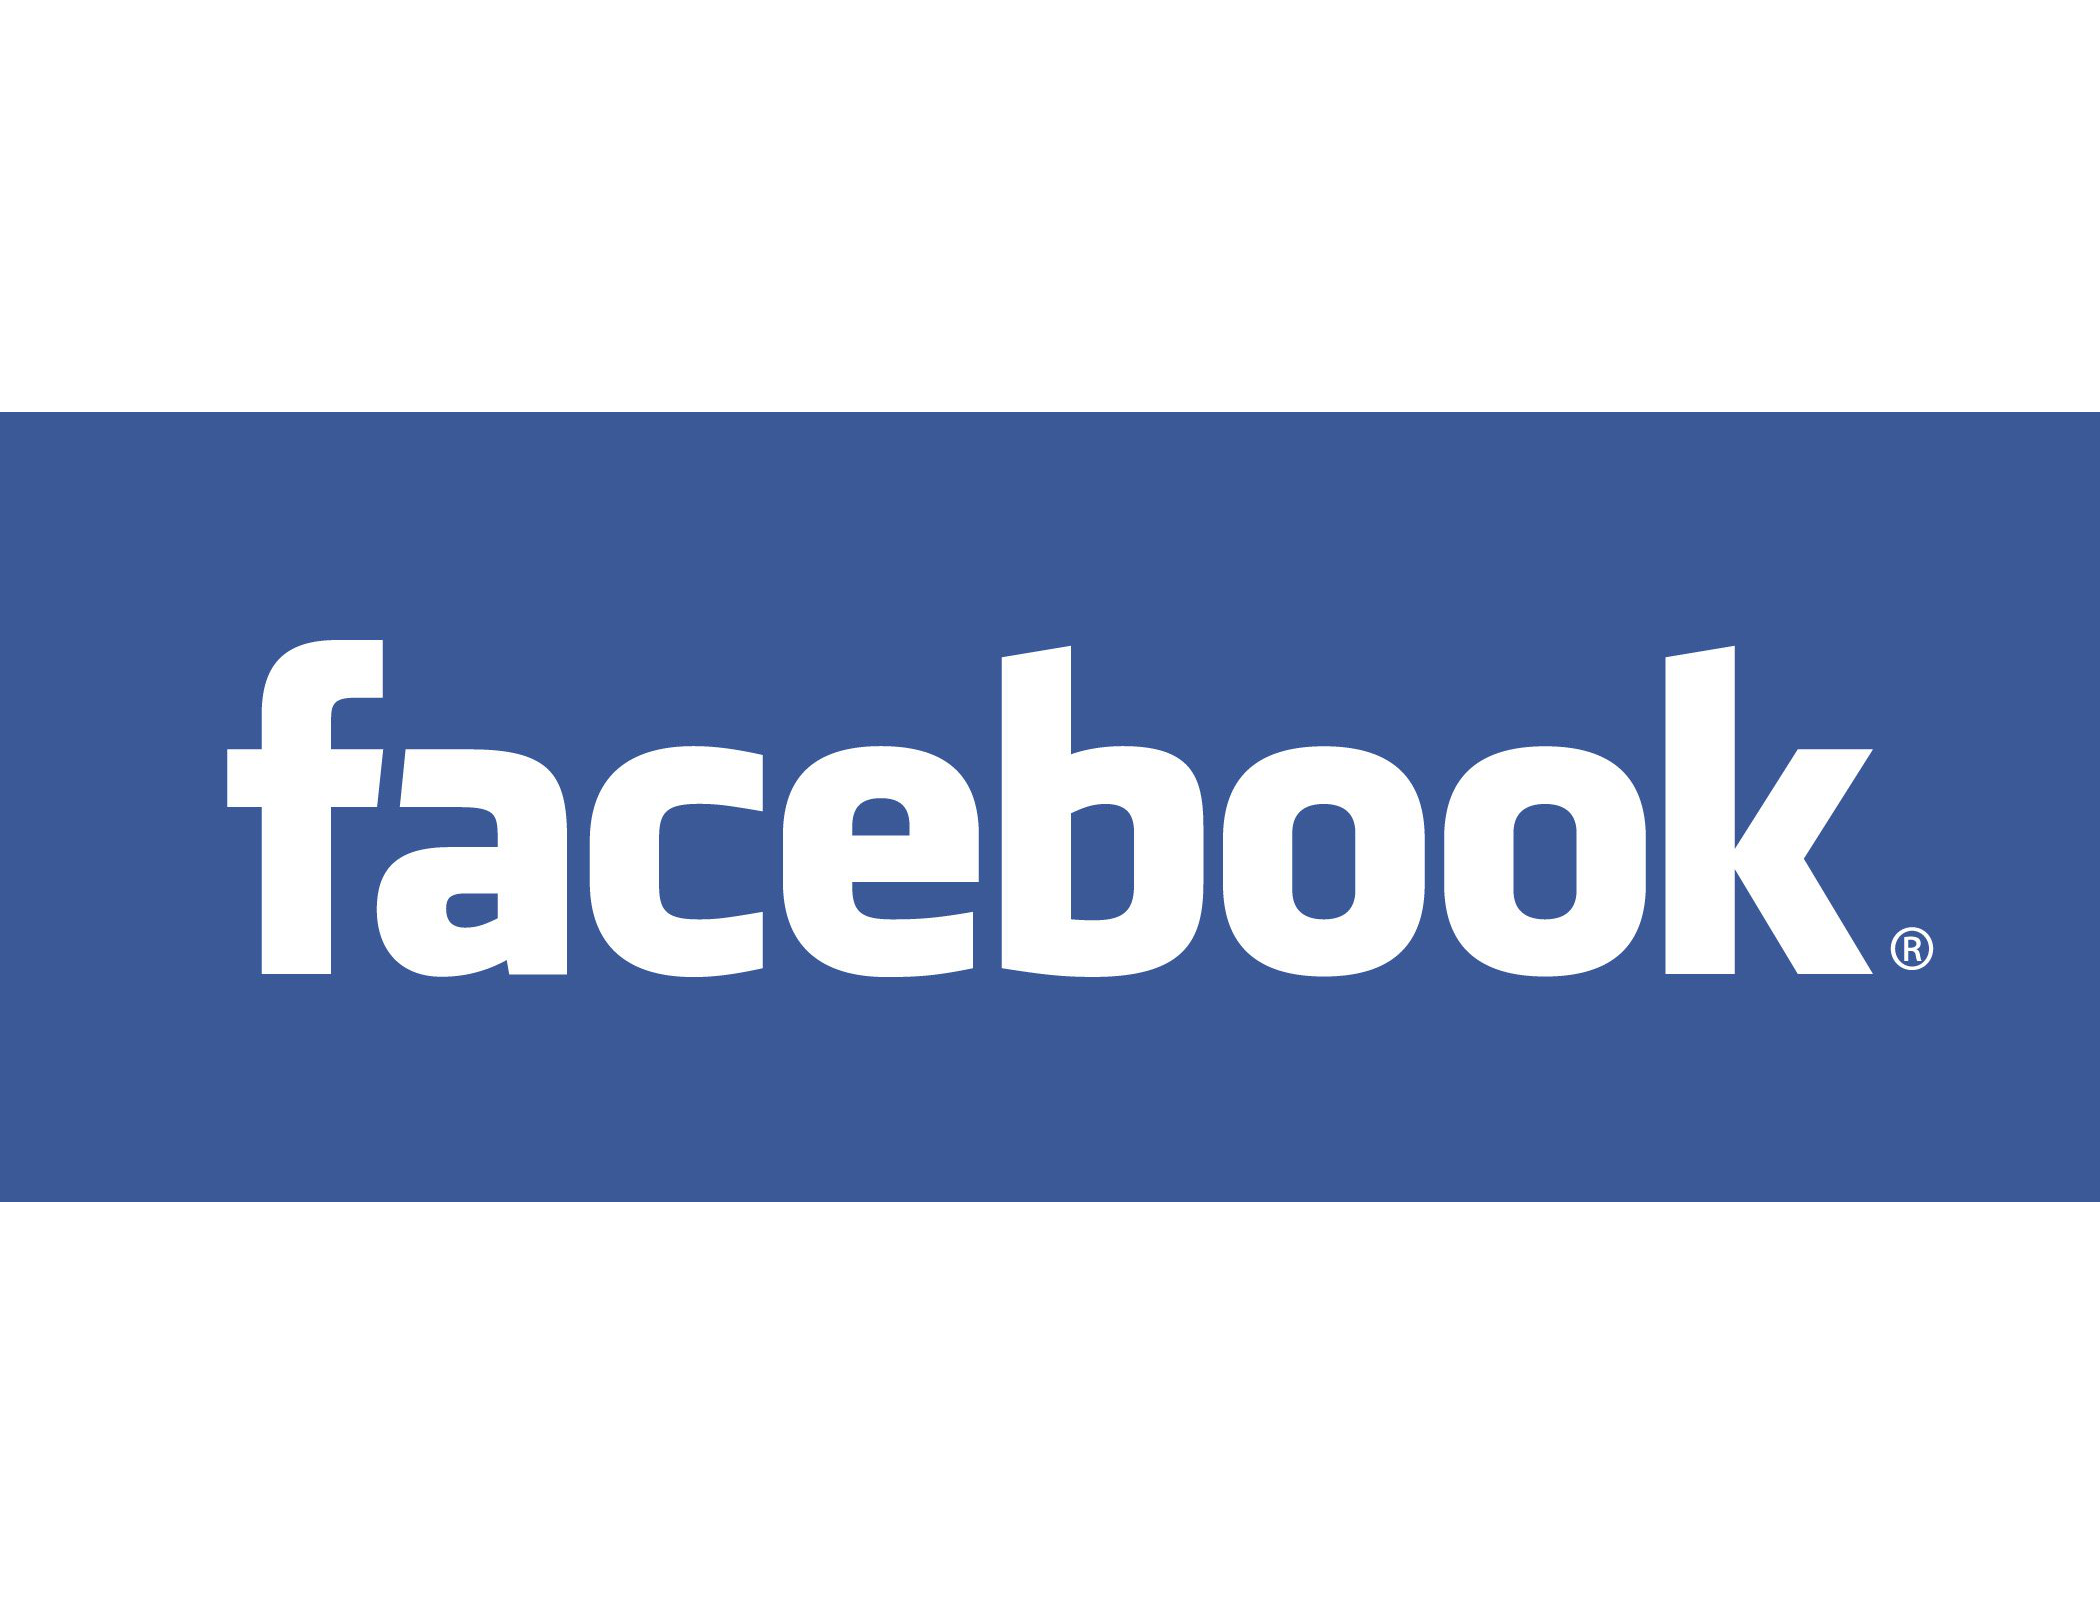 Facebook logo 2016 png. Transparent pictures free icons